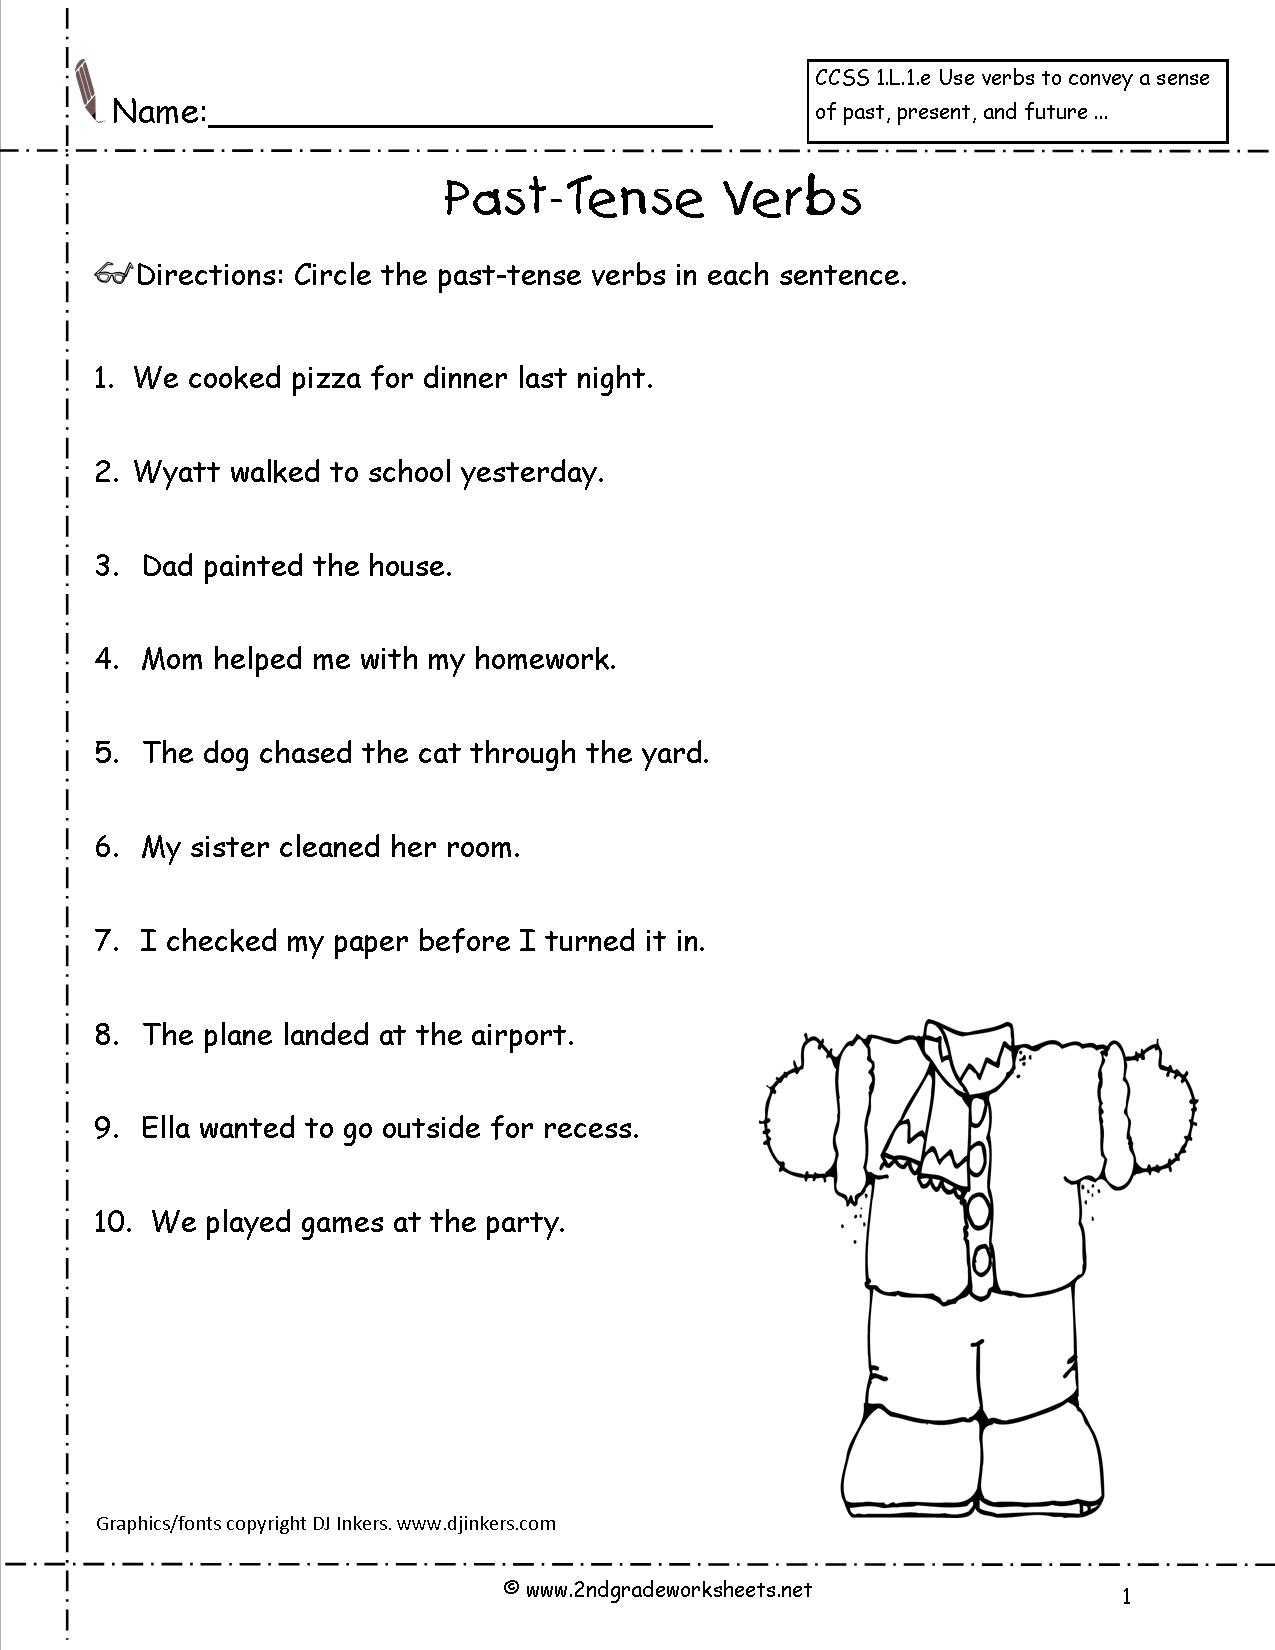 17 Best Images Of Past Tense Verb Worksheet Grade 2